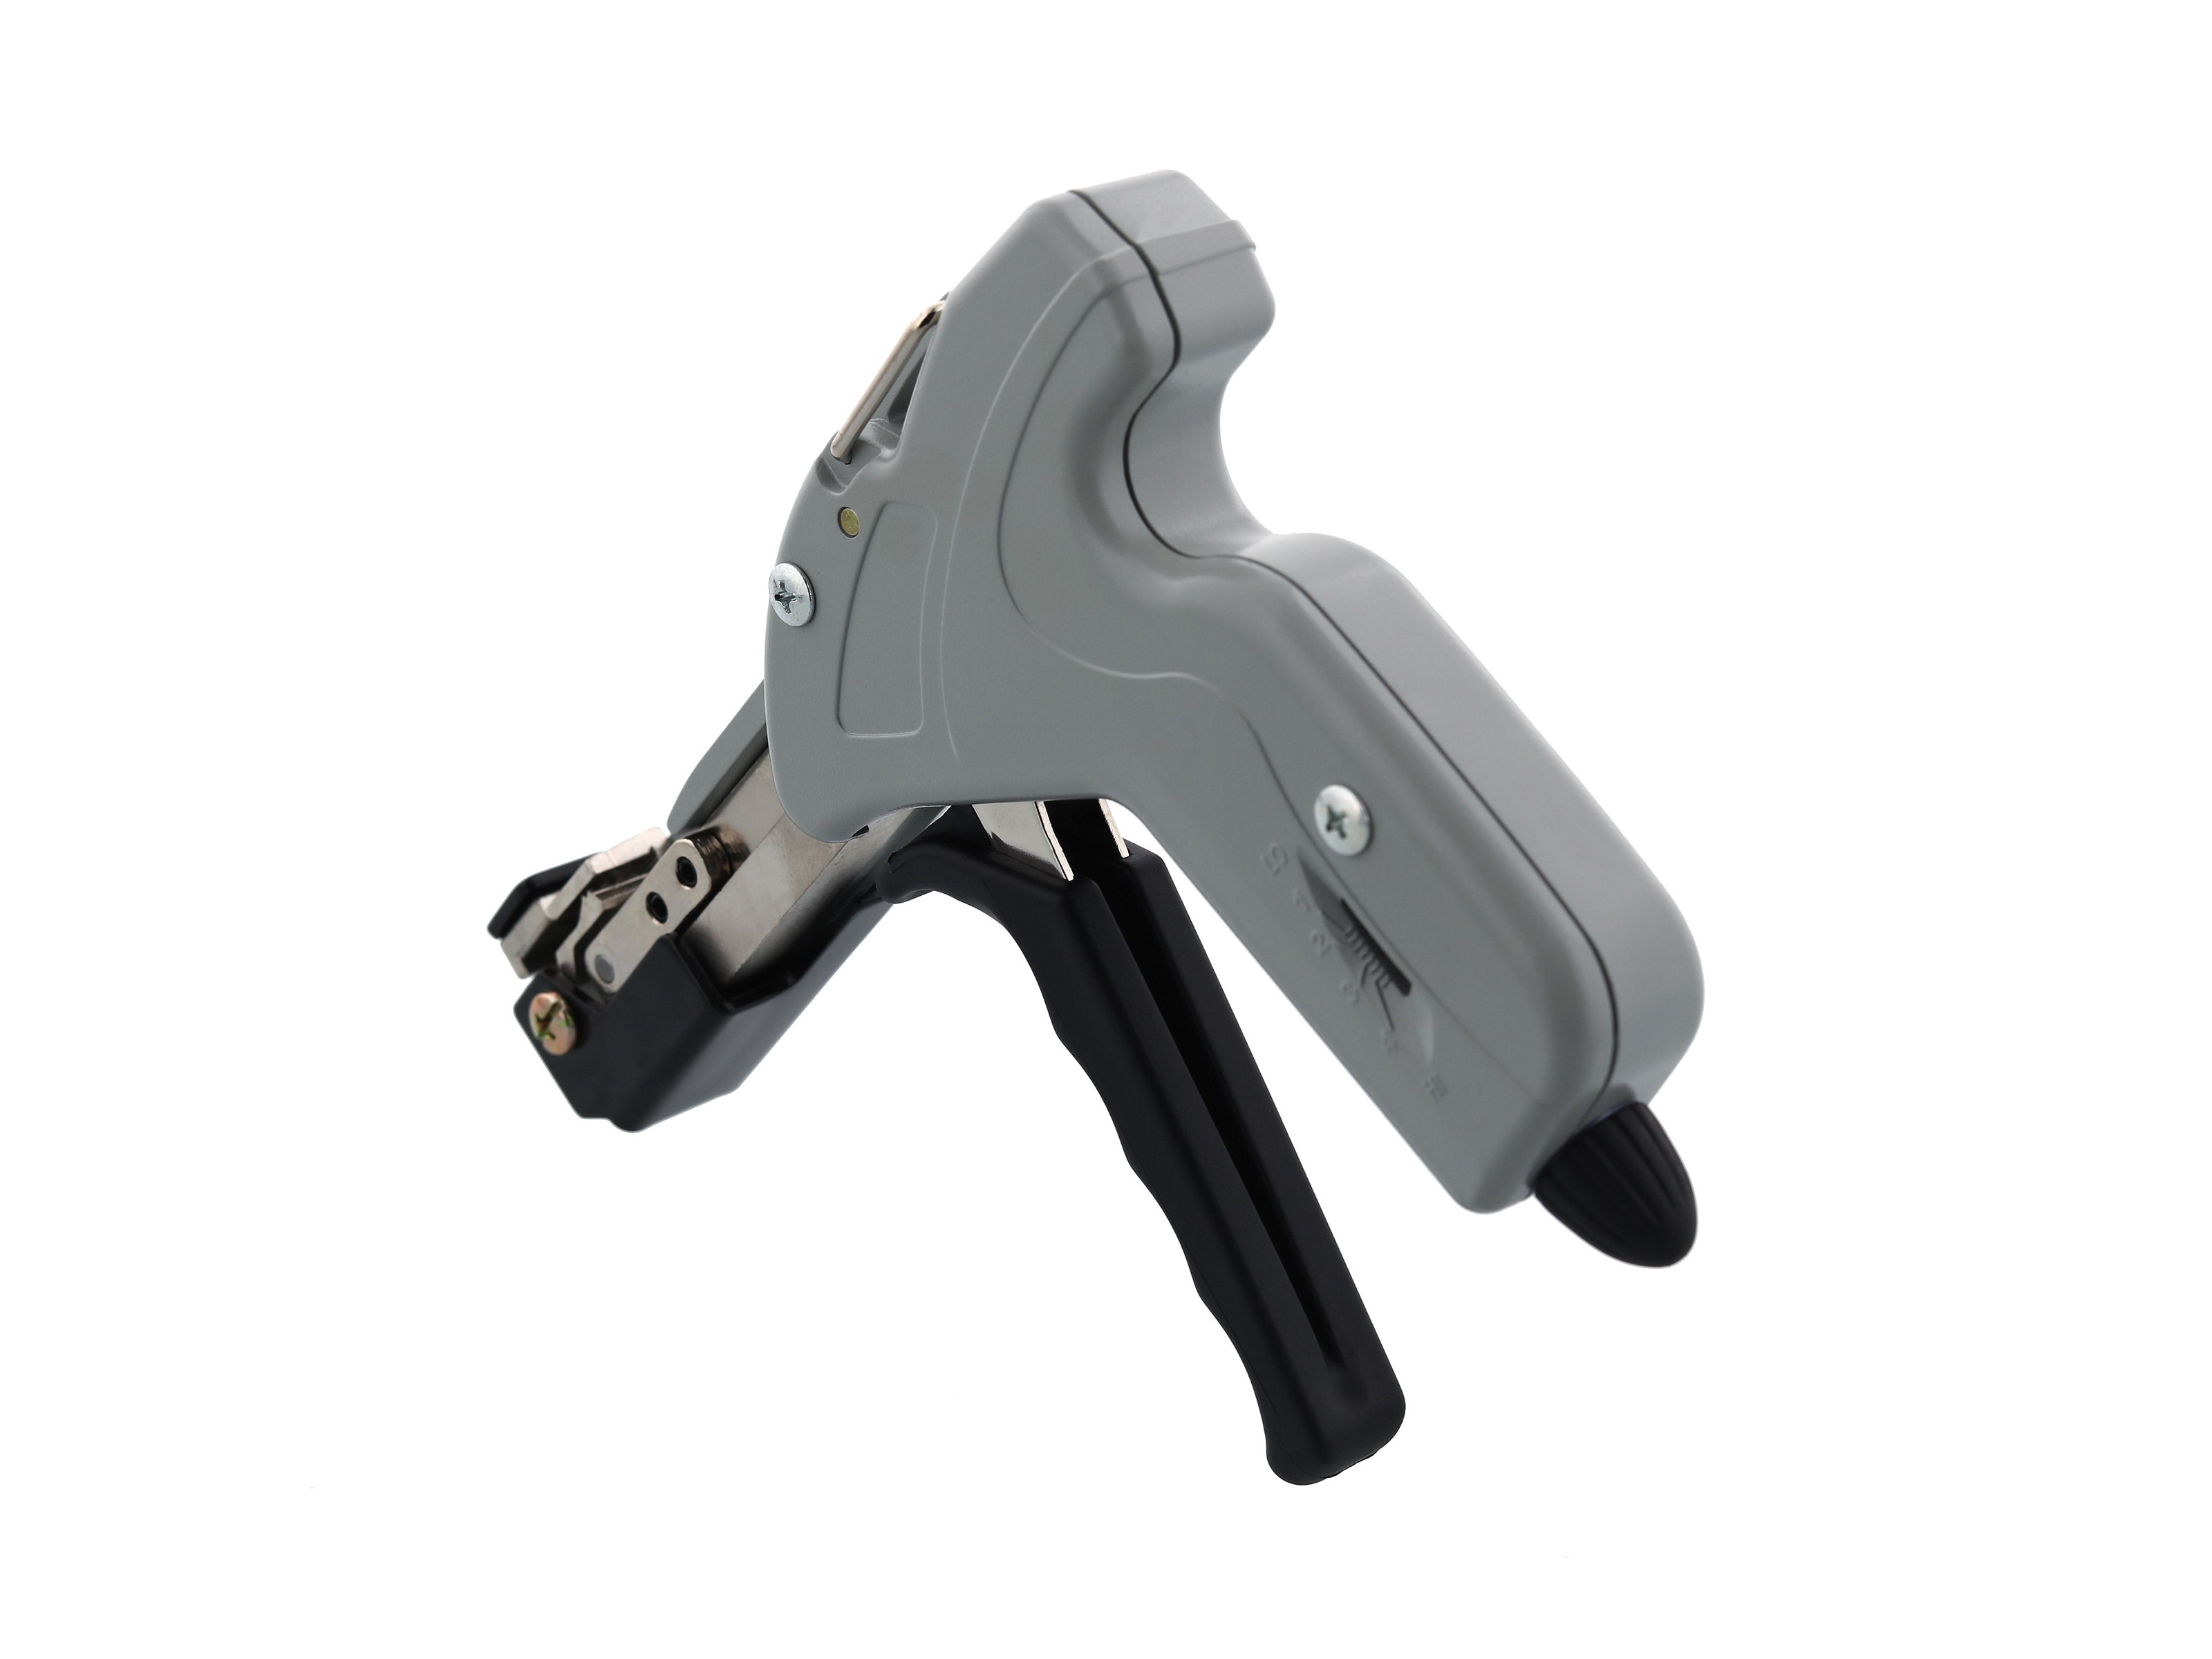 Heavy Duty Cable Tie Tool For Stainless Steel Cable Ties